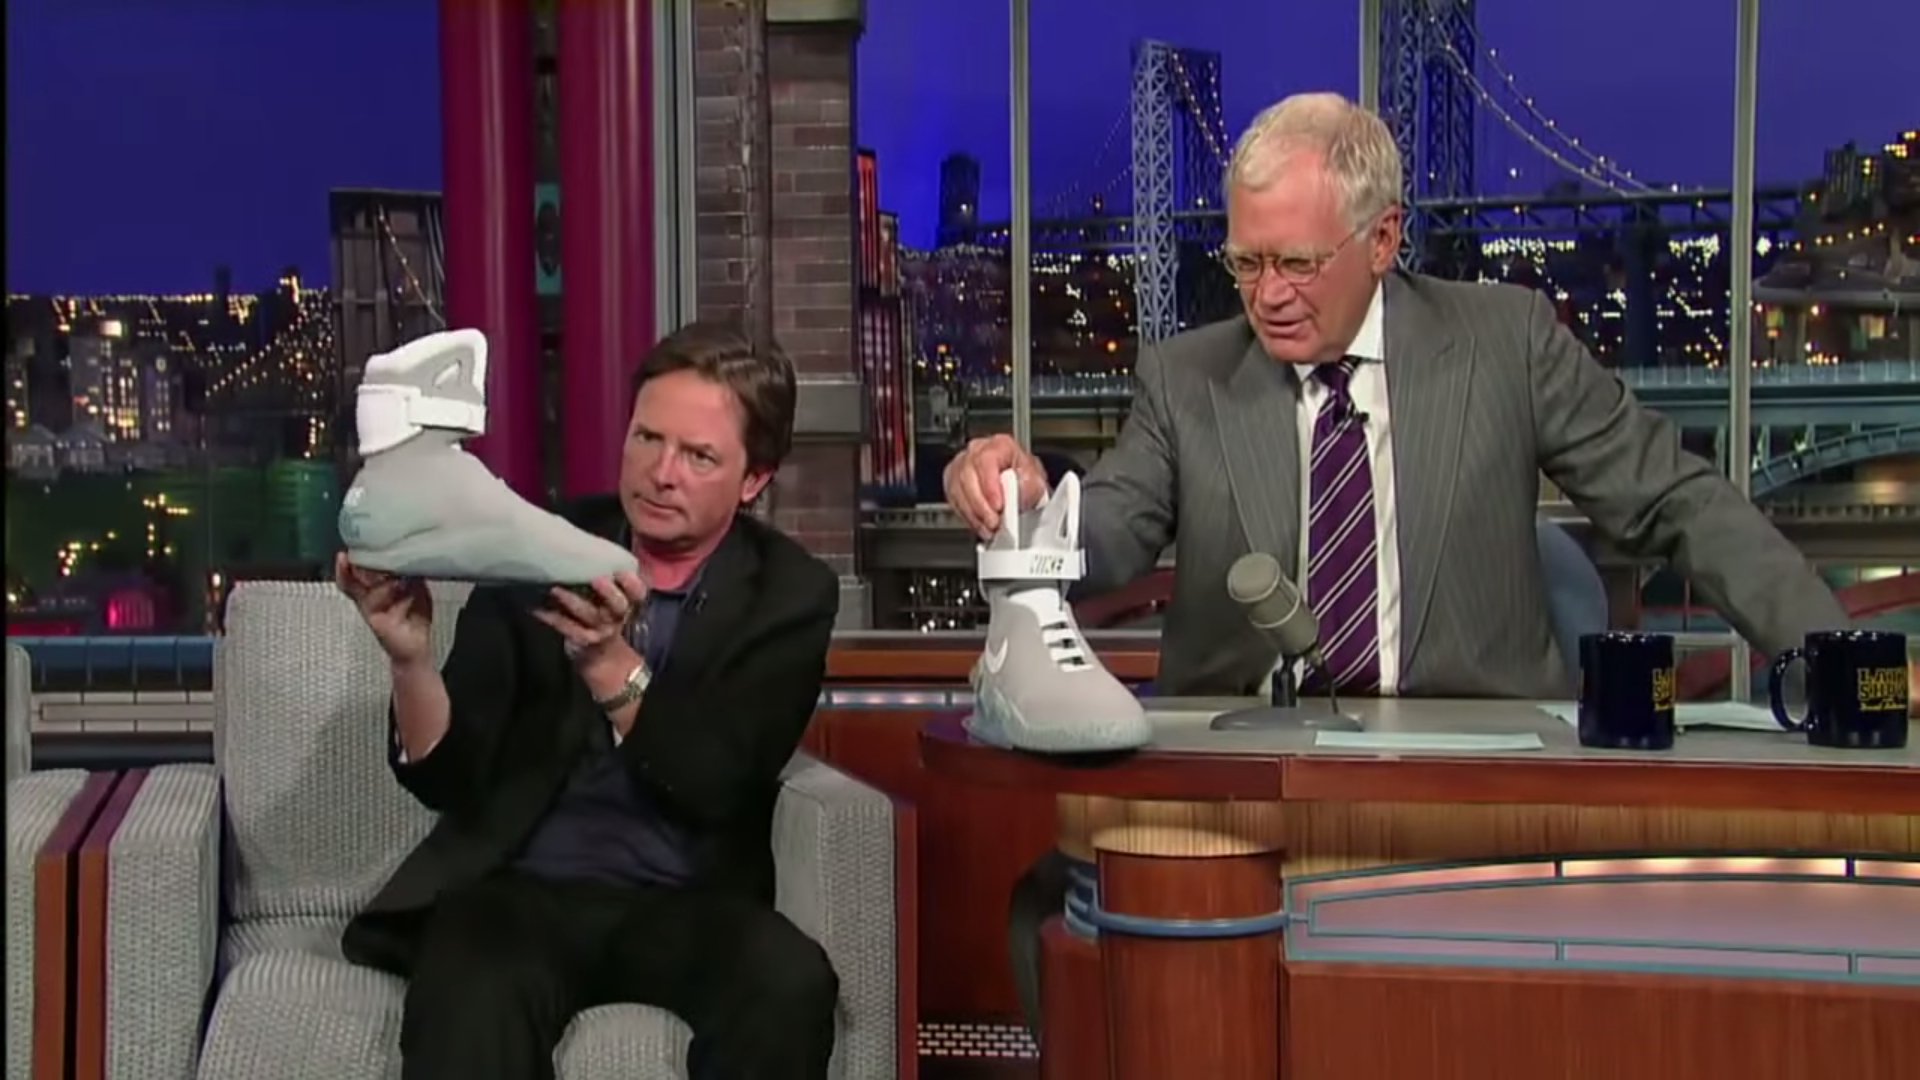 Nike creates McFly's shoes The Daily Universe